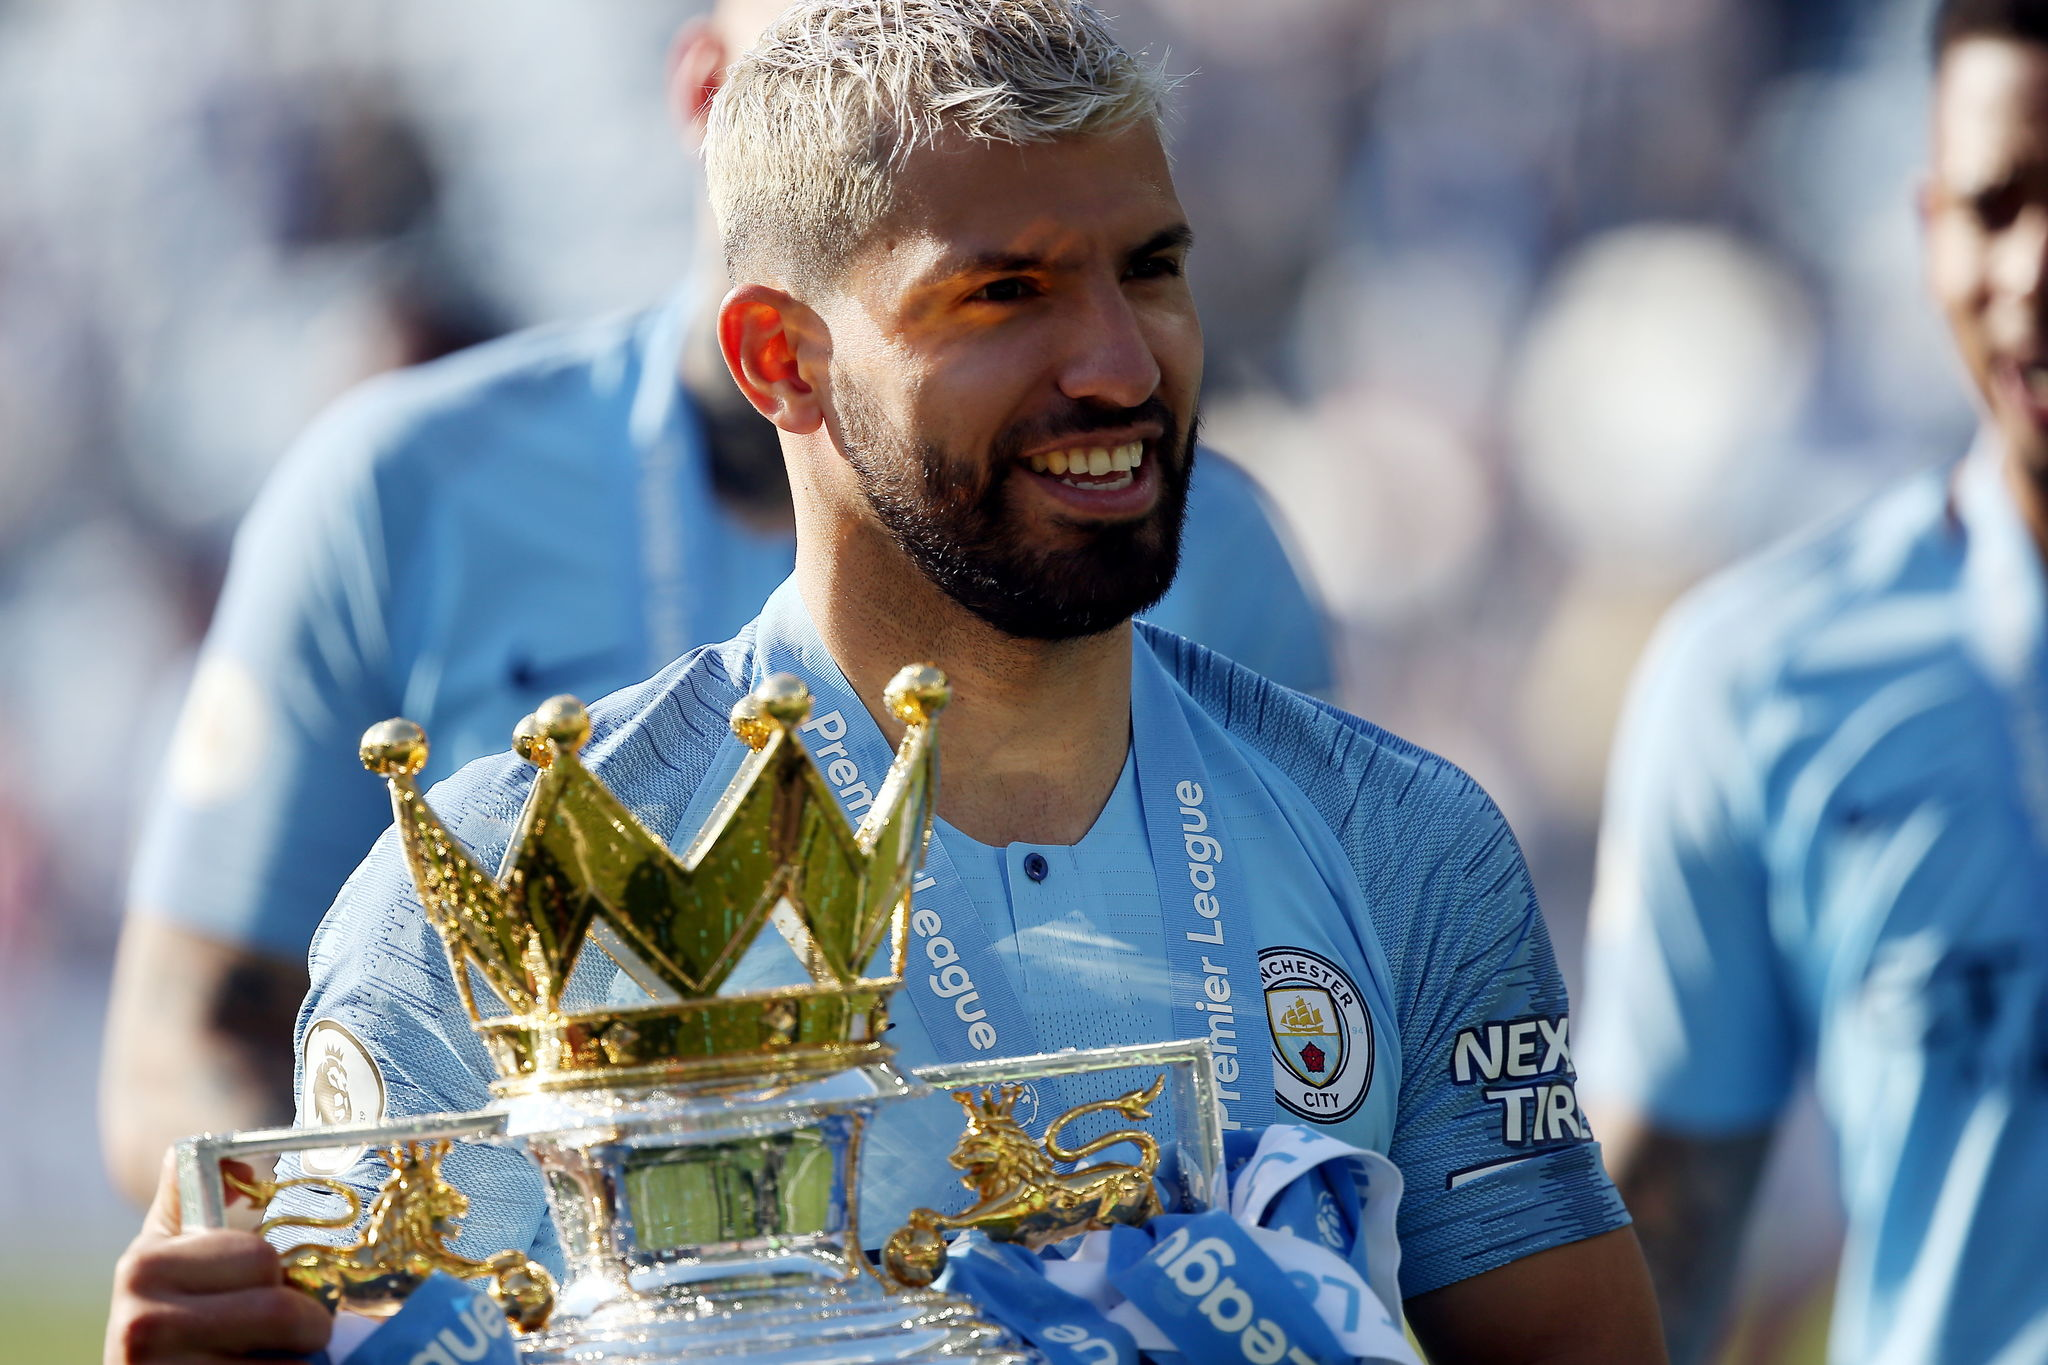 Brighton (United Kingdom), 12/05/2019.- Manchester City Sergio <HIT>Aguero</HIT> celebrates with the trophy after the English Premier League match between Brighton and Hove Albion and Manchester City, Brighton, Britain, 12 May 2019. Manchester City won 4-1 and won the Premier League title. (Reino Unido) EFE/EPA/JAMES BOARDMAN EDITORIAL USE ONLY. No use with unauthorized audio, video, data, fixture lists, club/league logos or live services. Online in-match use limited to 120 images, no video emulation. No use in betting, games or single club/league/player publications